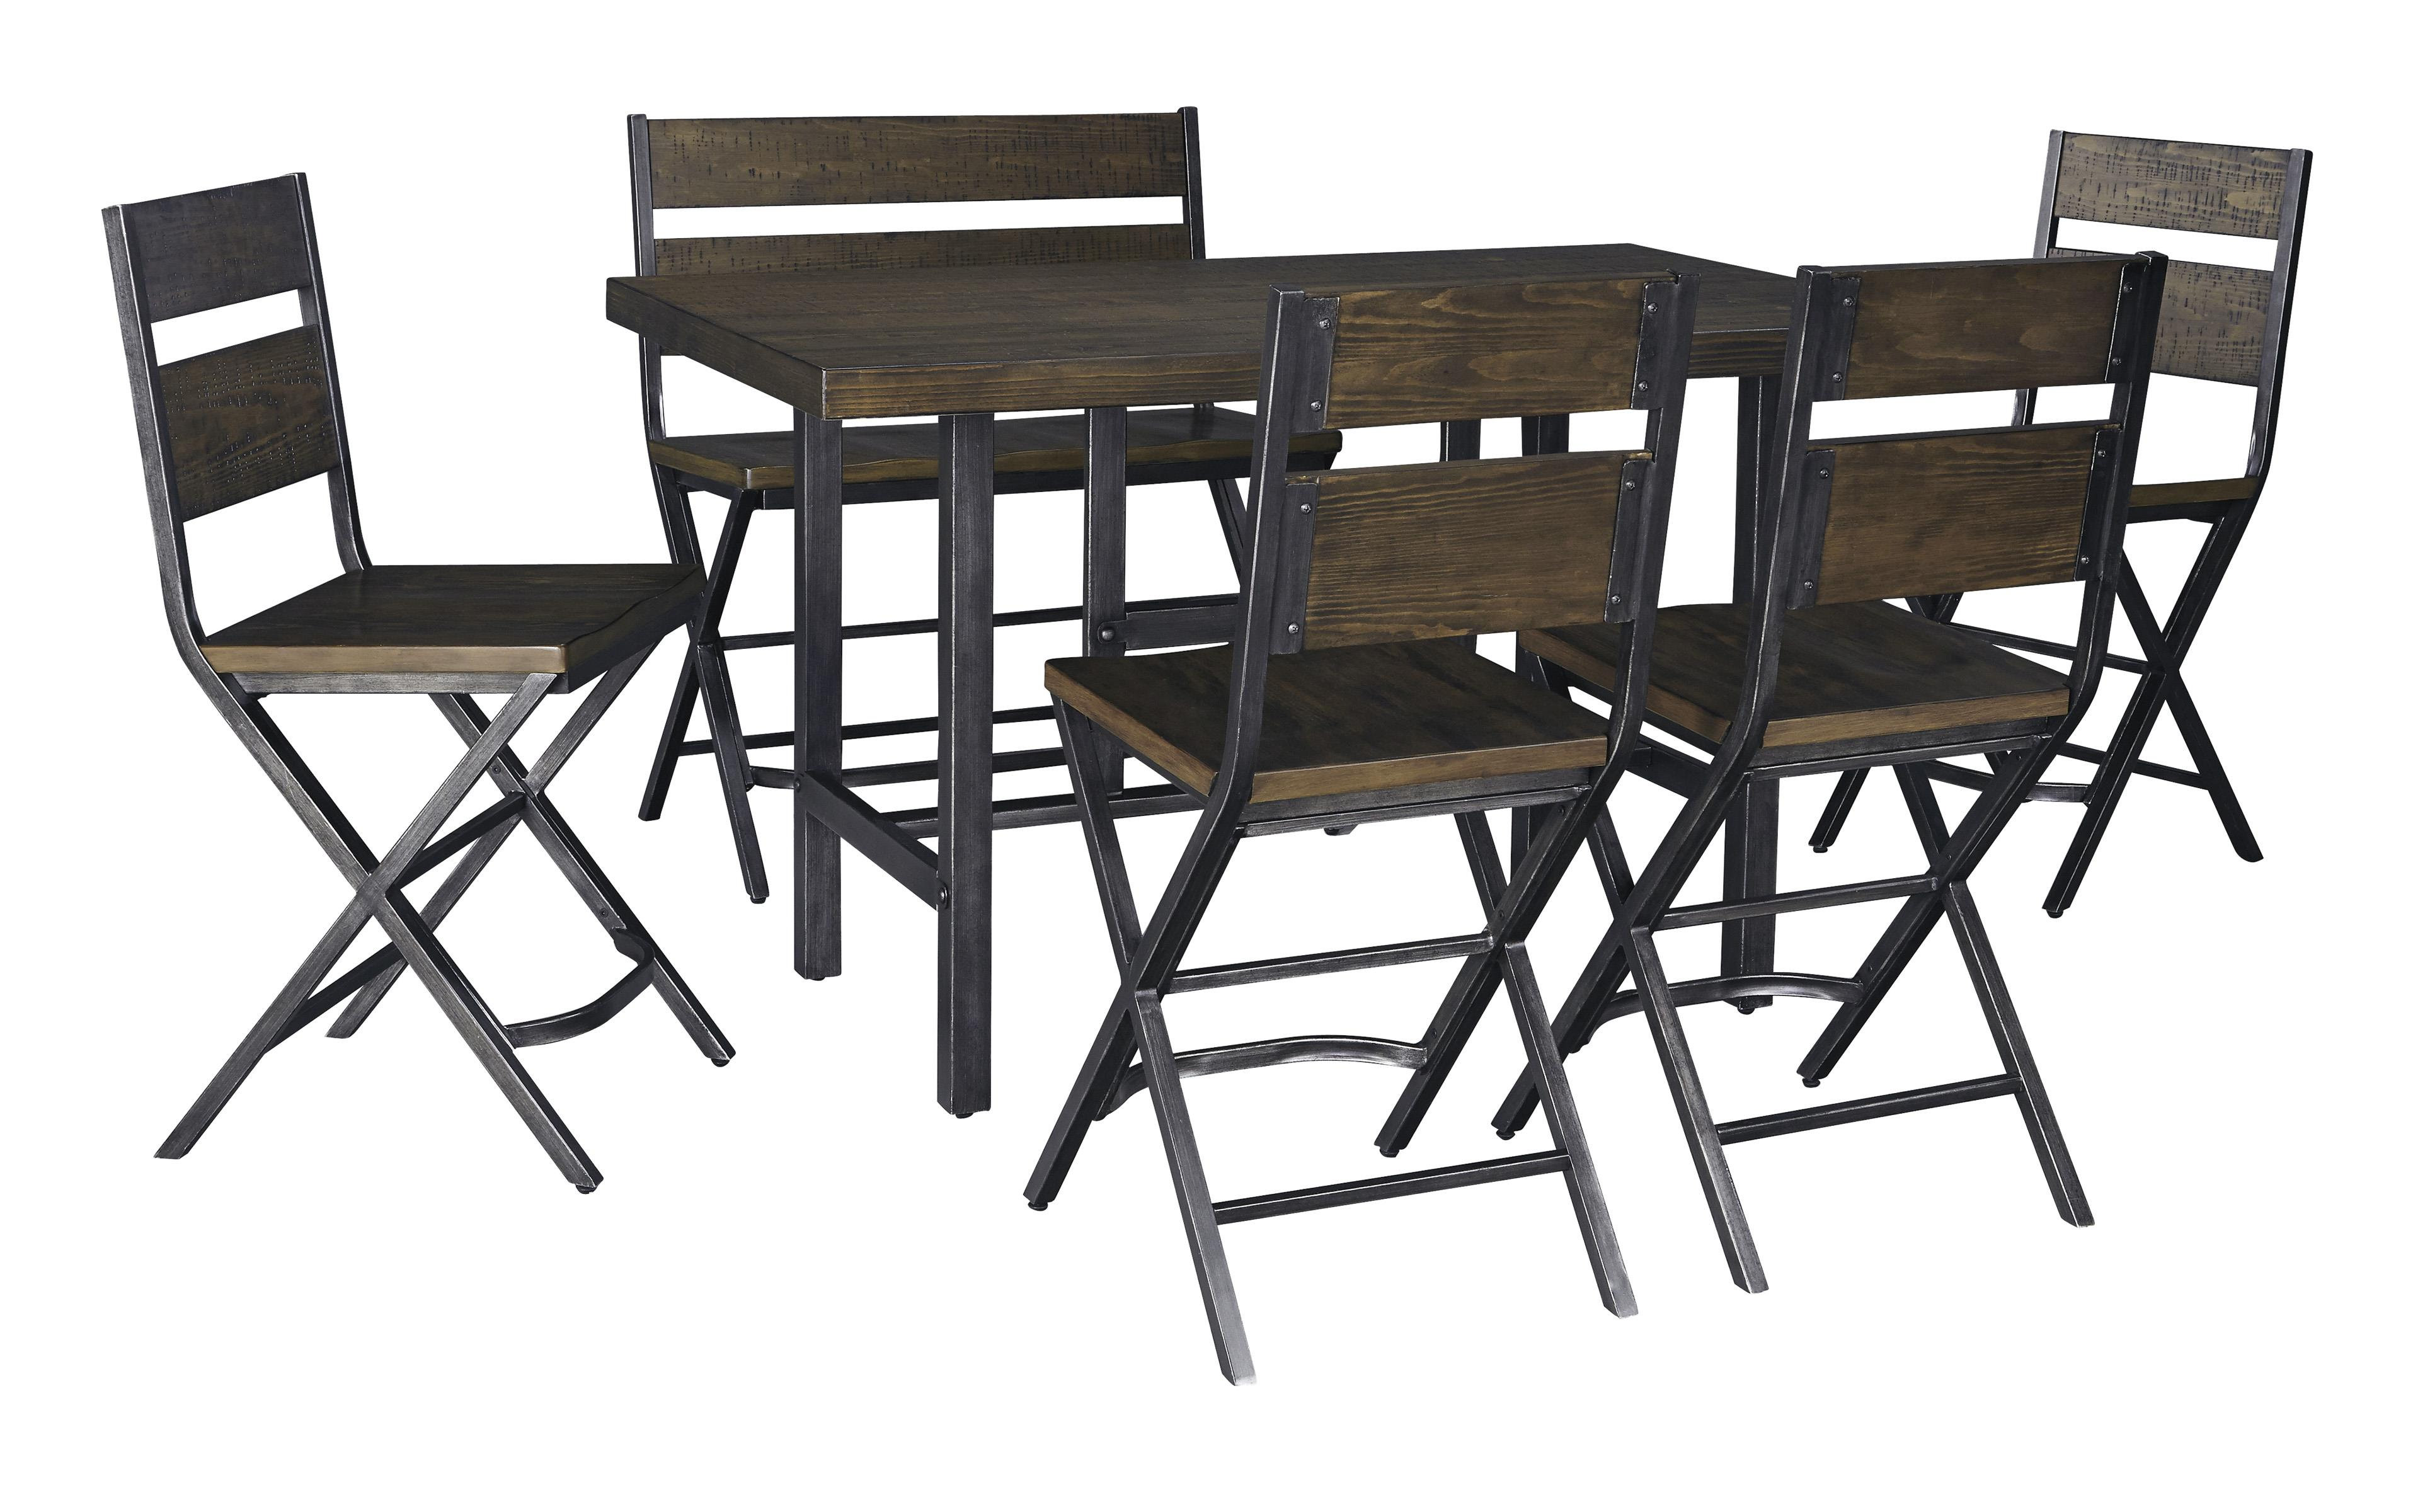 6 piece rectangular dining room counter table w pine veneers w 4 bar stools w shaped foot. Black Bedroom Furniture Sets. Home Design Ideas